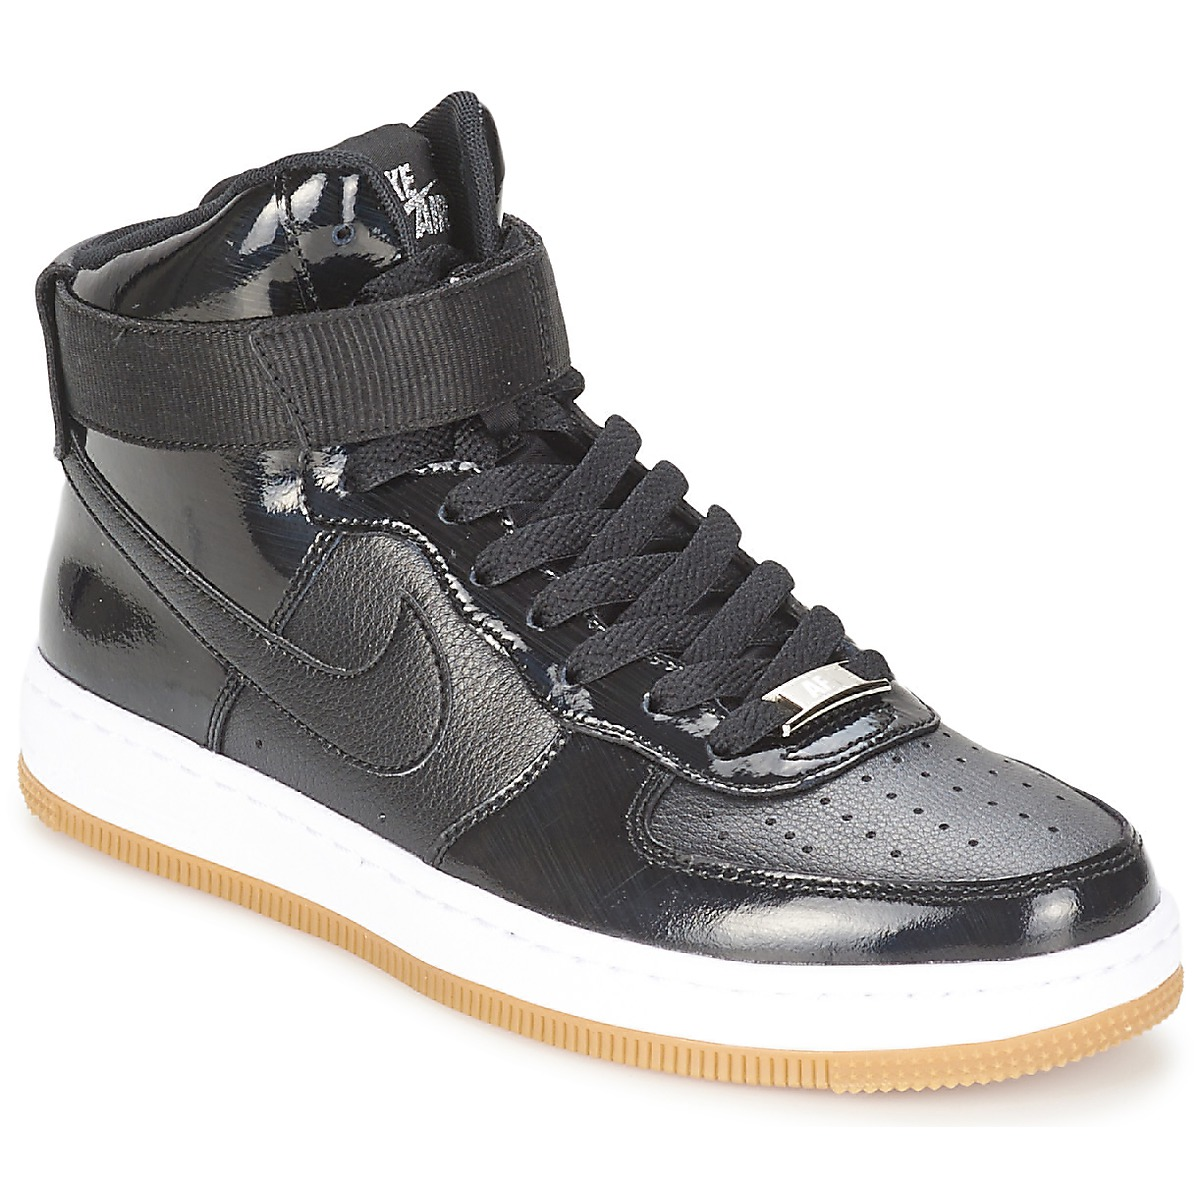 43b40a99c69693 Baskets montantes Nike AIR FORCE 1 AIRNESS MID - Baskets Femme Spartoo